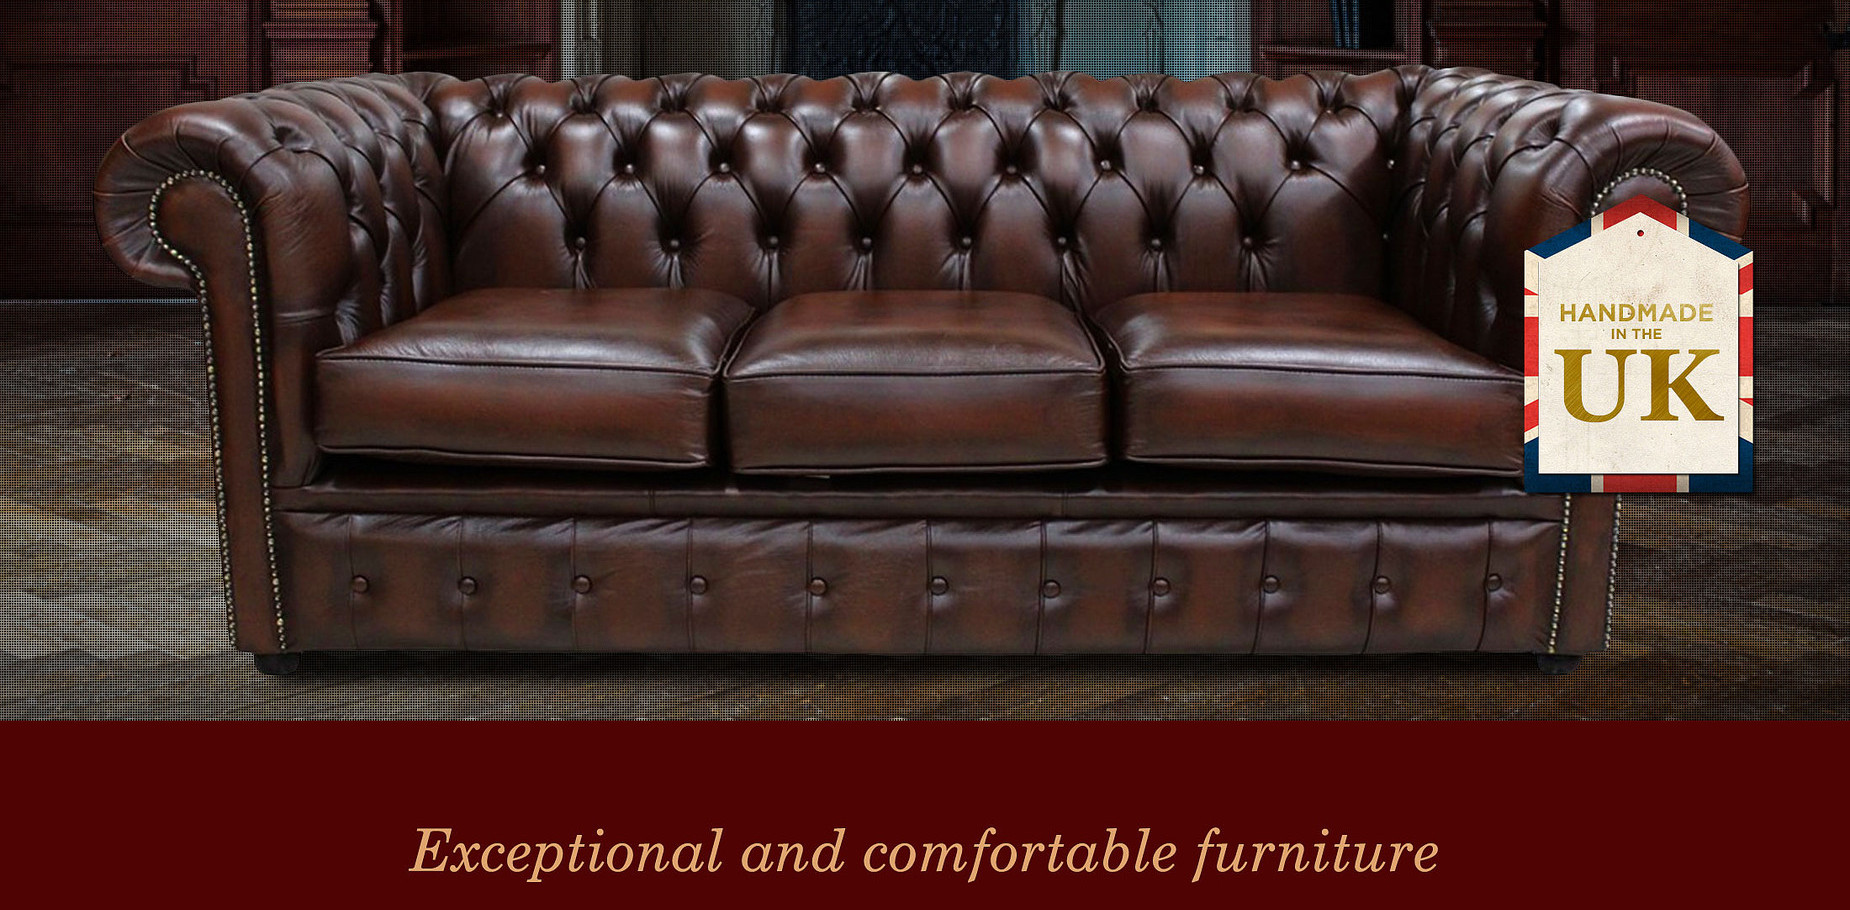 3 Seat Chesterfield Sofa